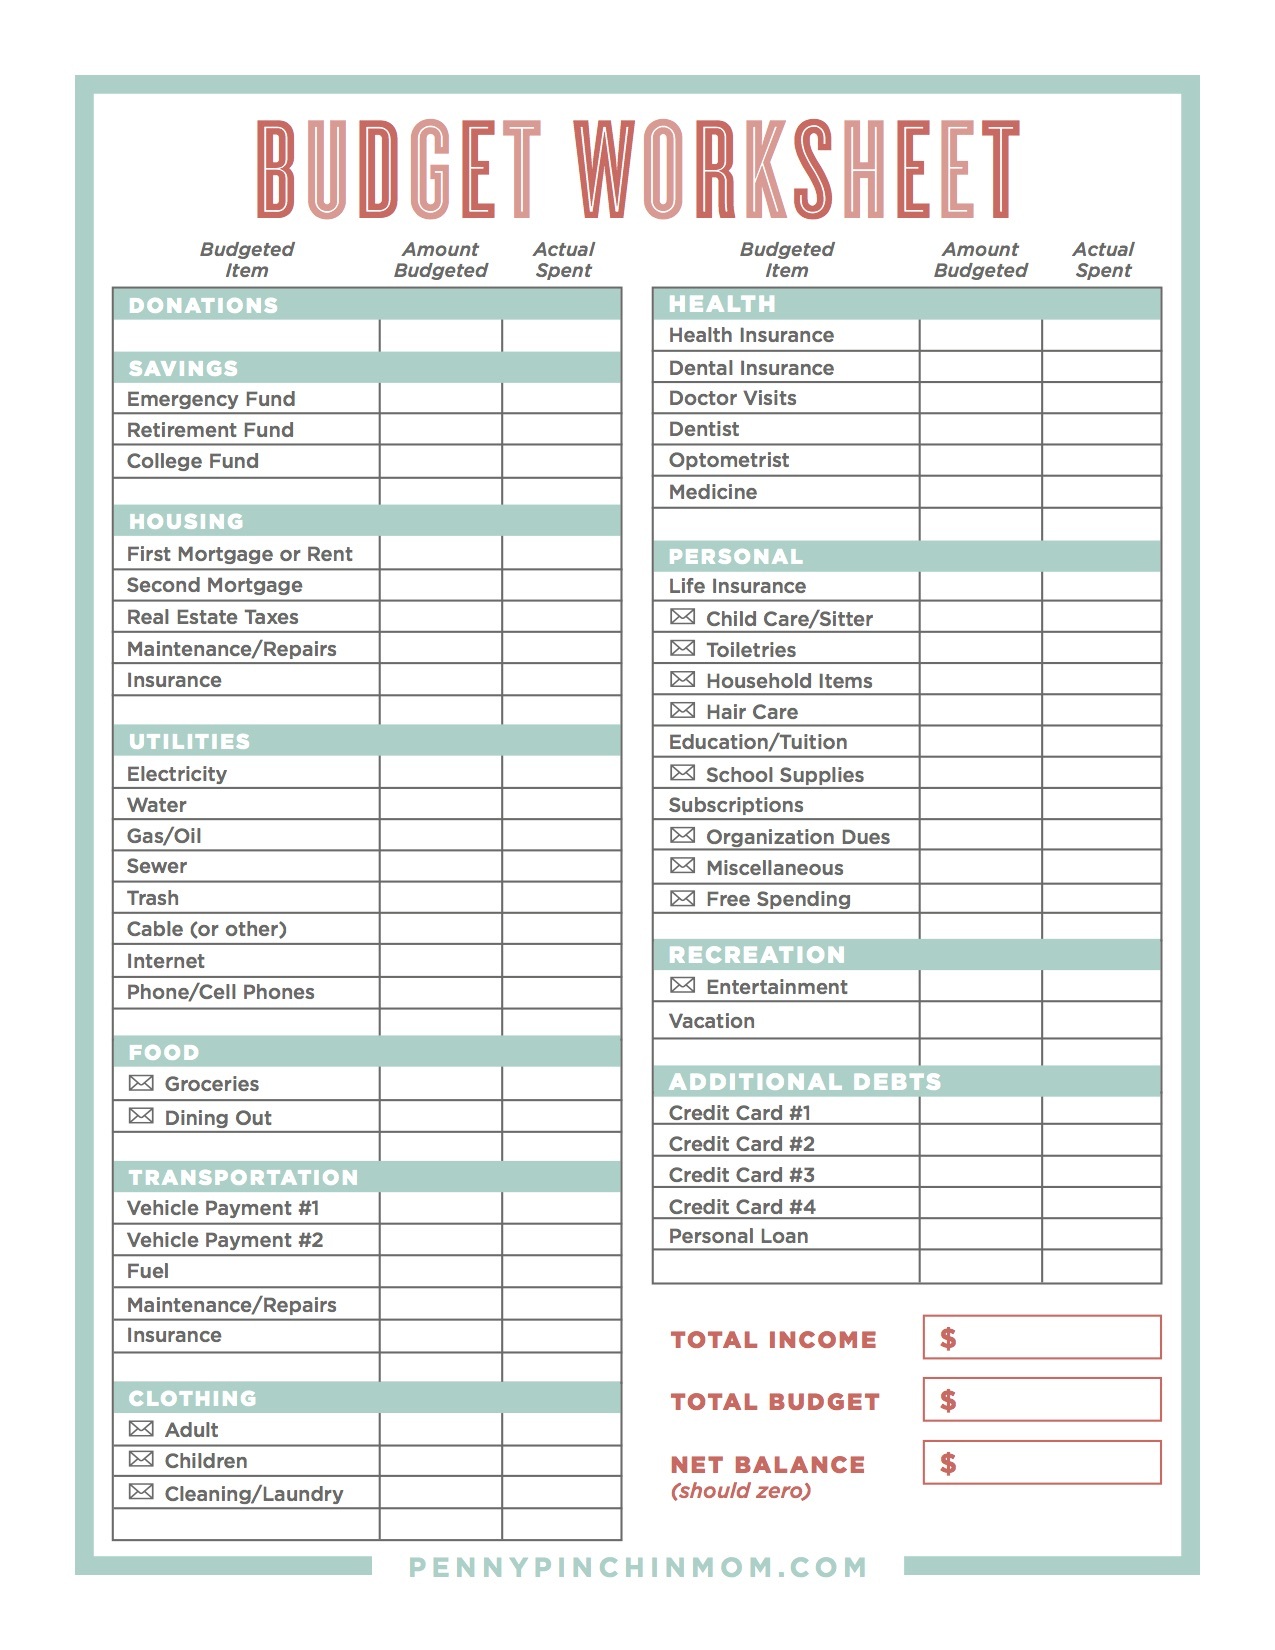 Creating a budget worksheet answers